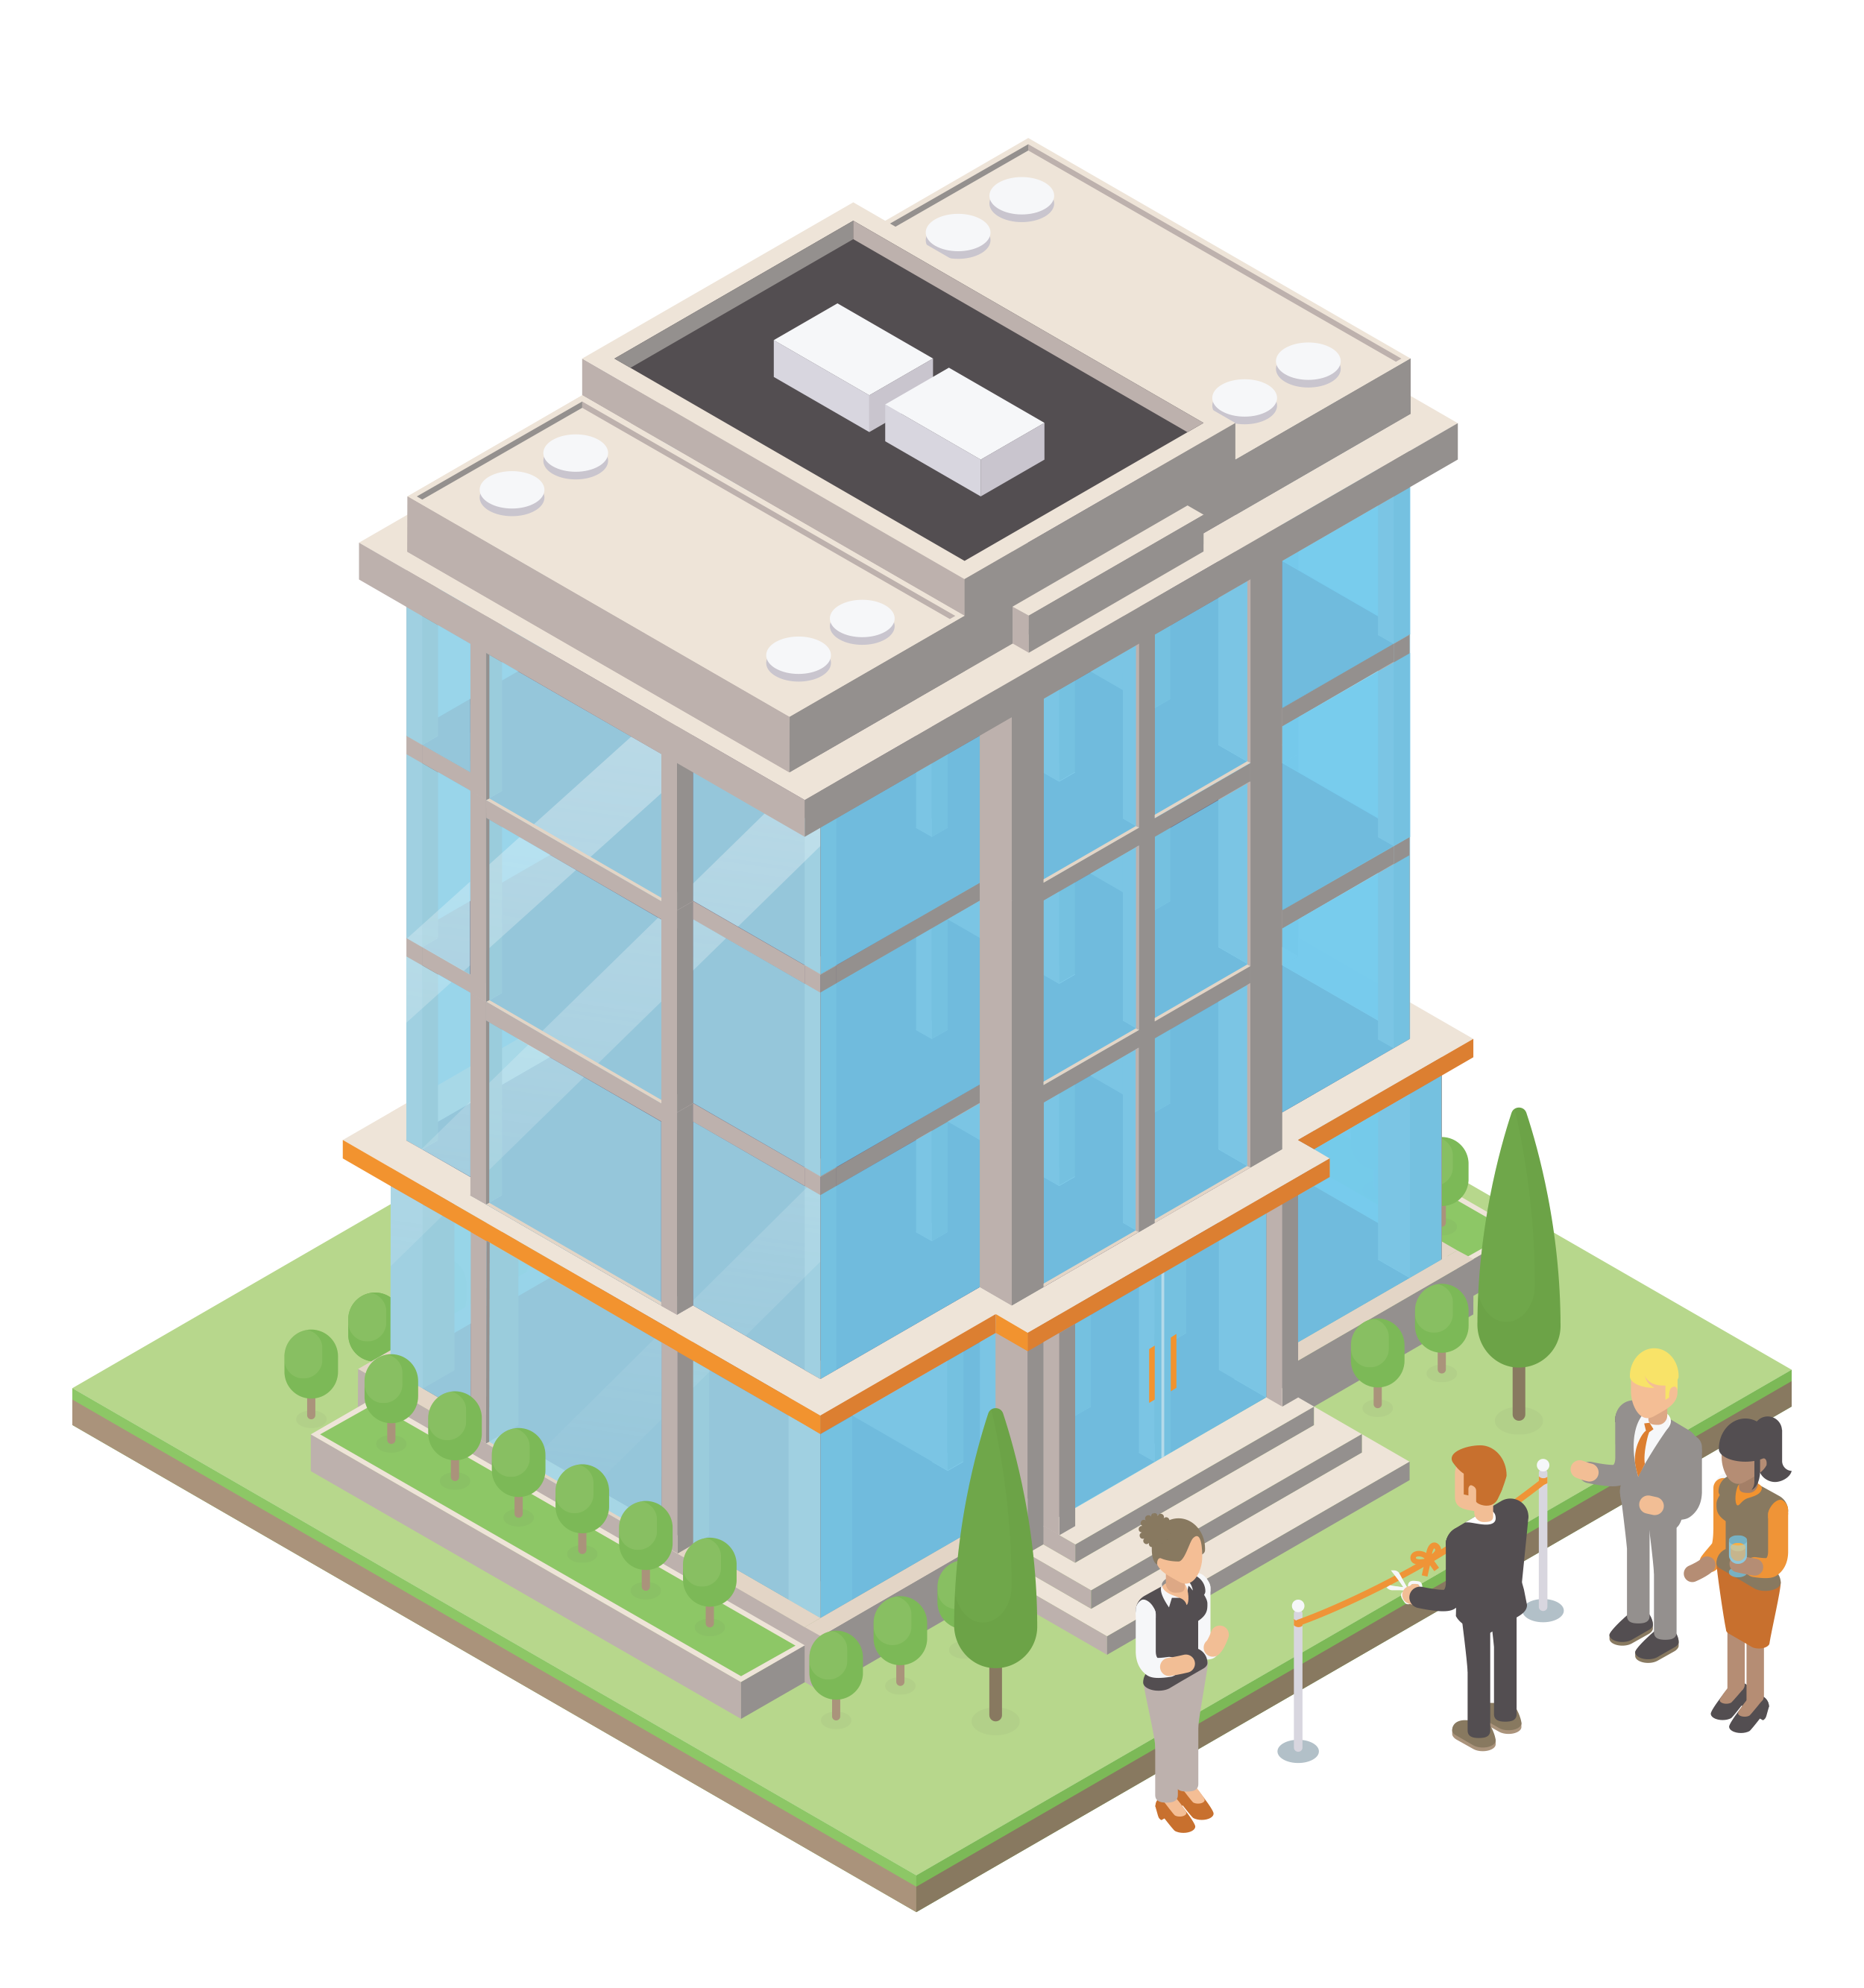 illustration_andre_levy_zhion_vector_isometric_perspective_infographic_construction_building_team_process_5.png